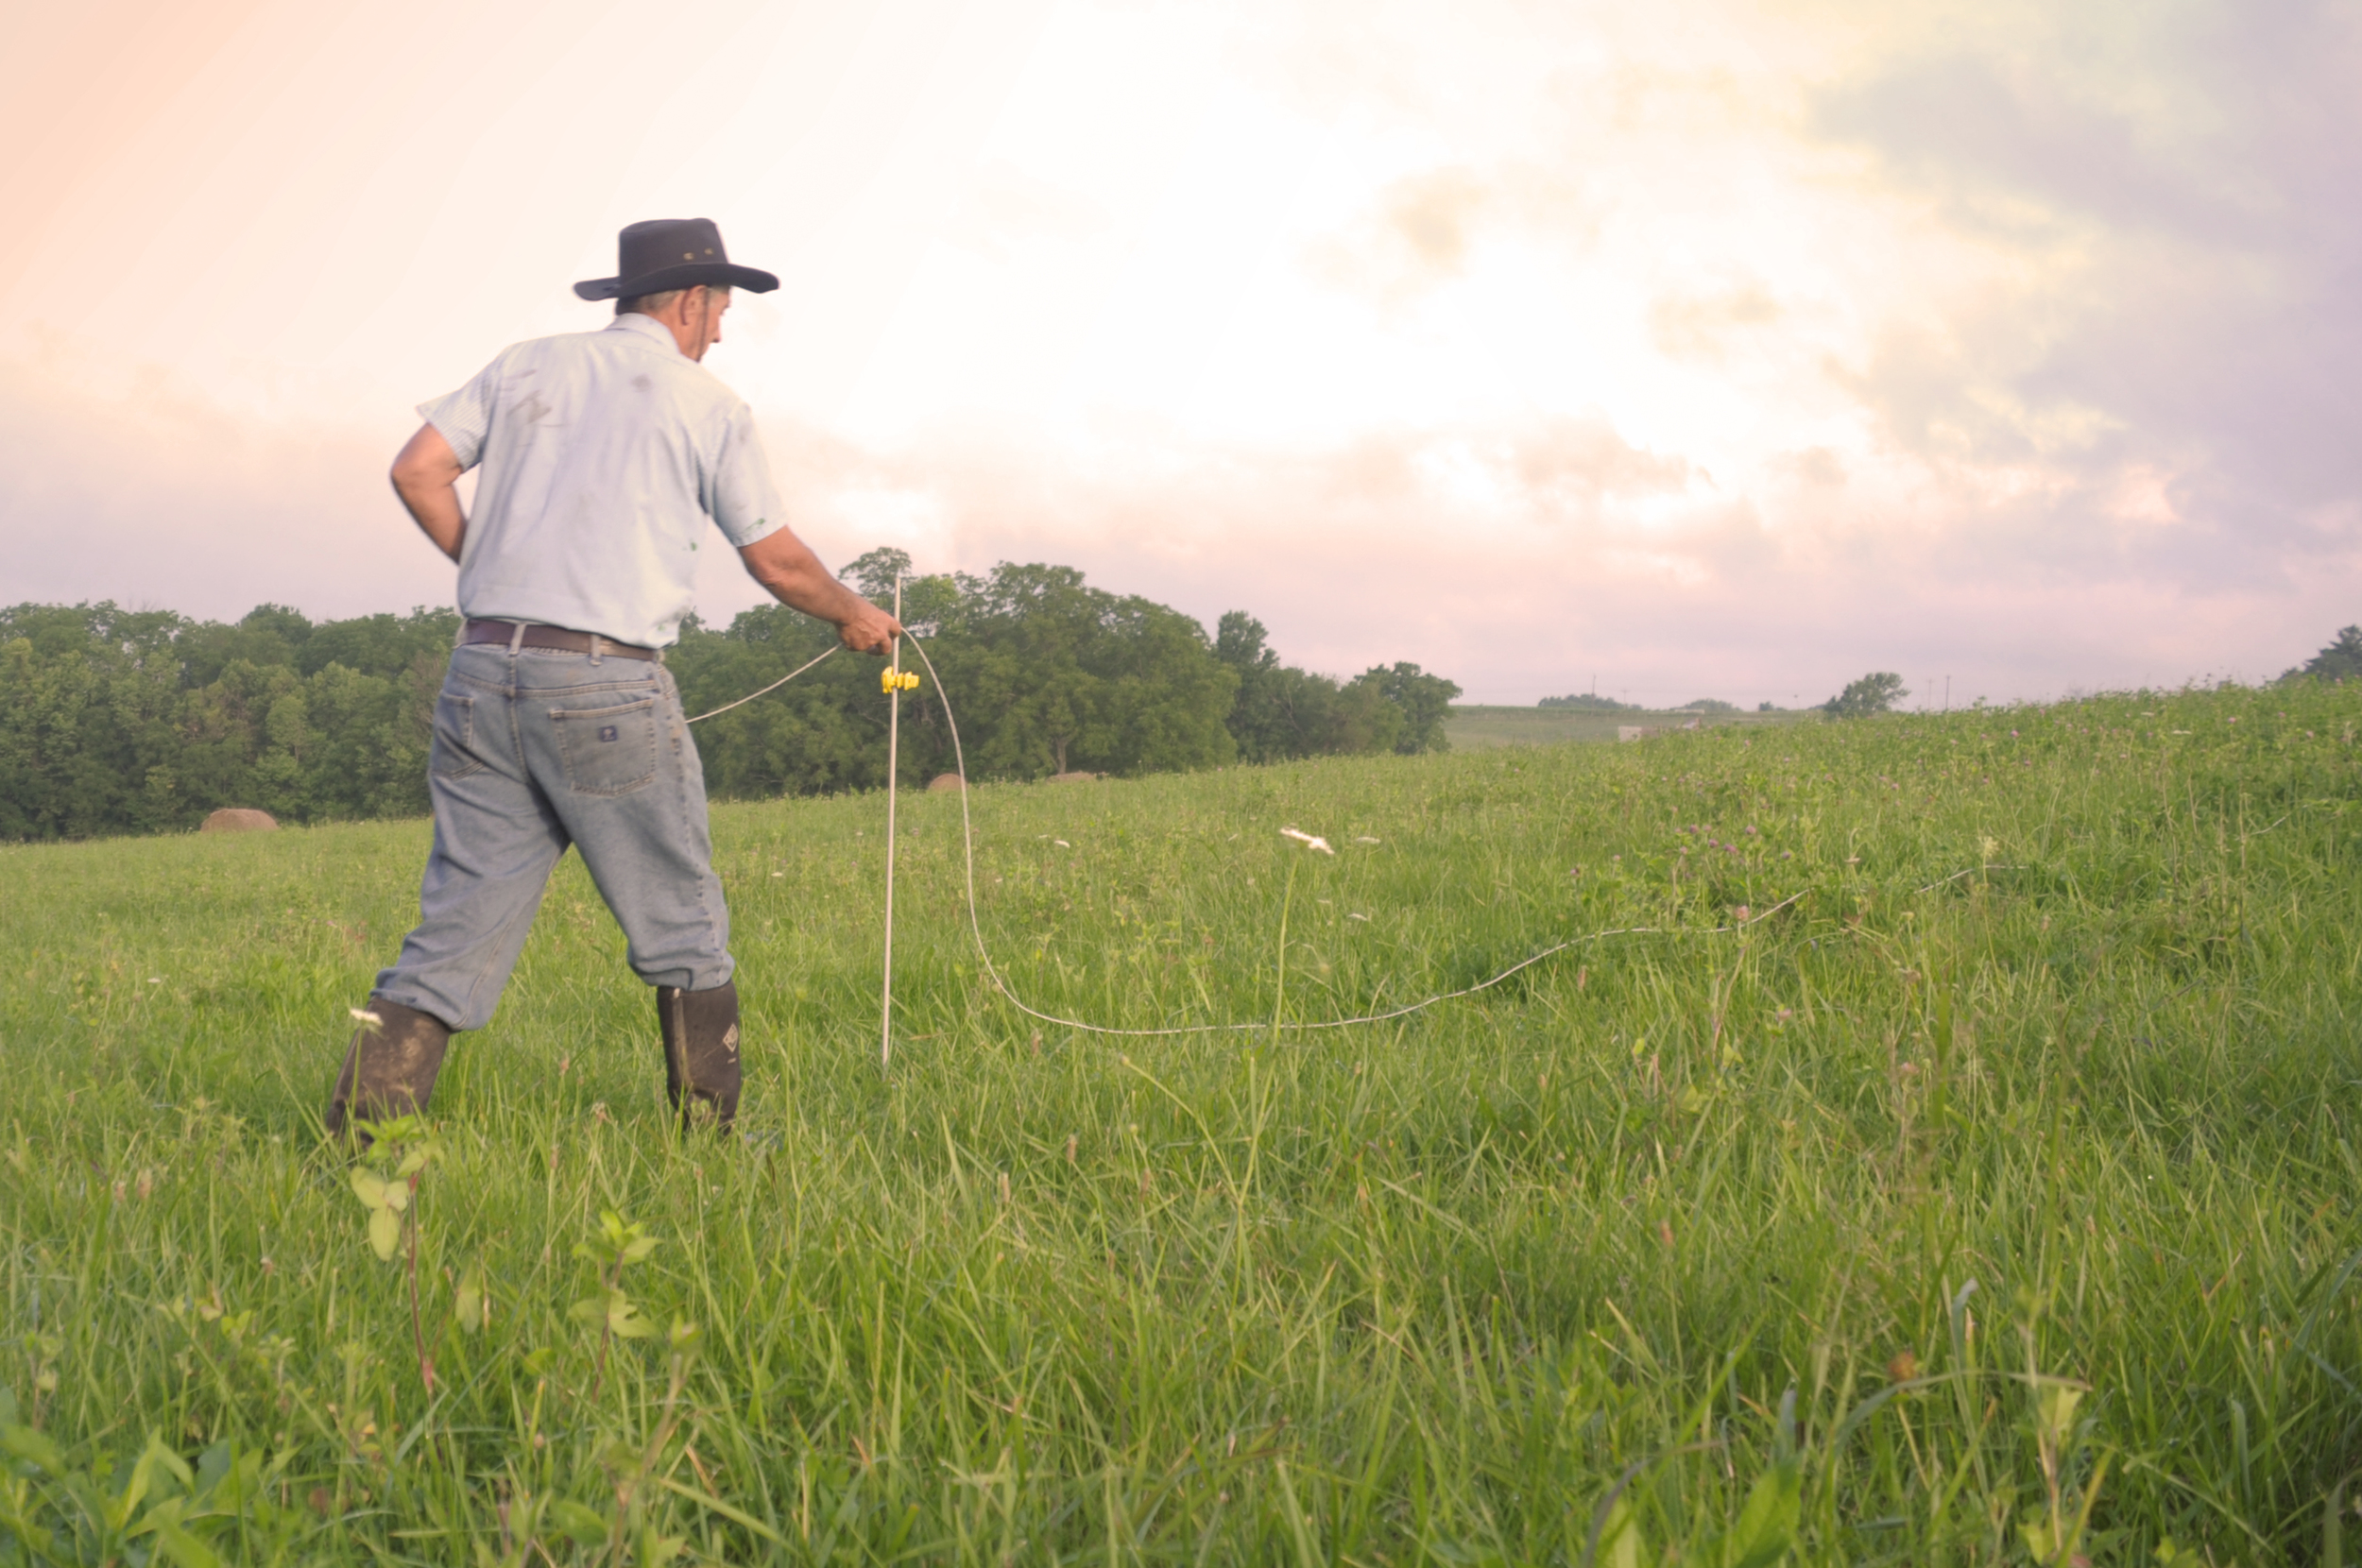 Moving the fence for rotational grazing